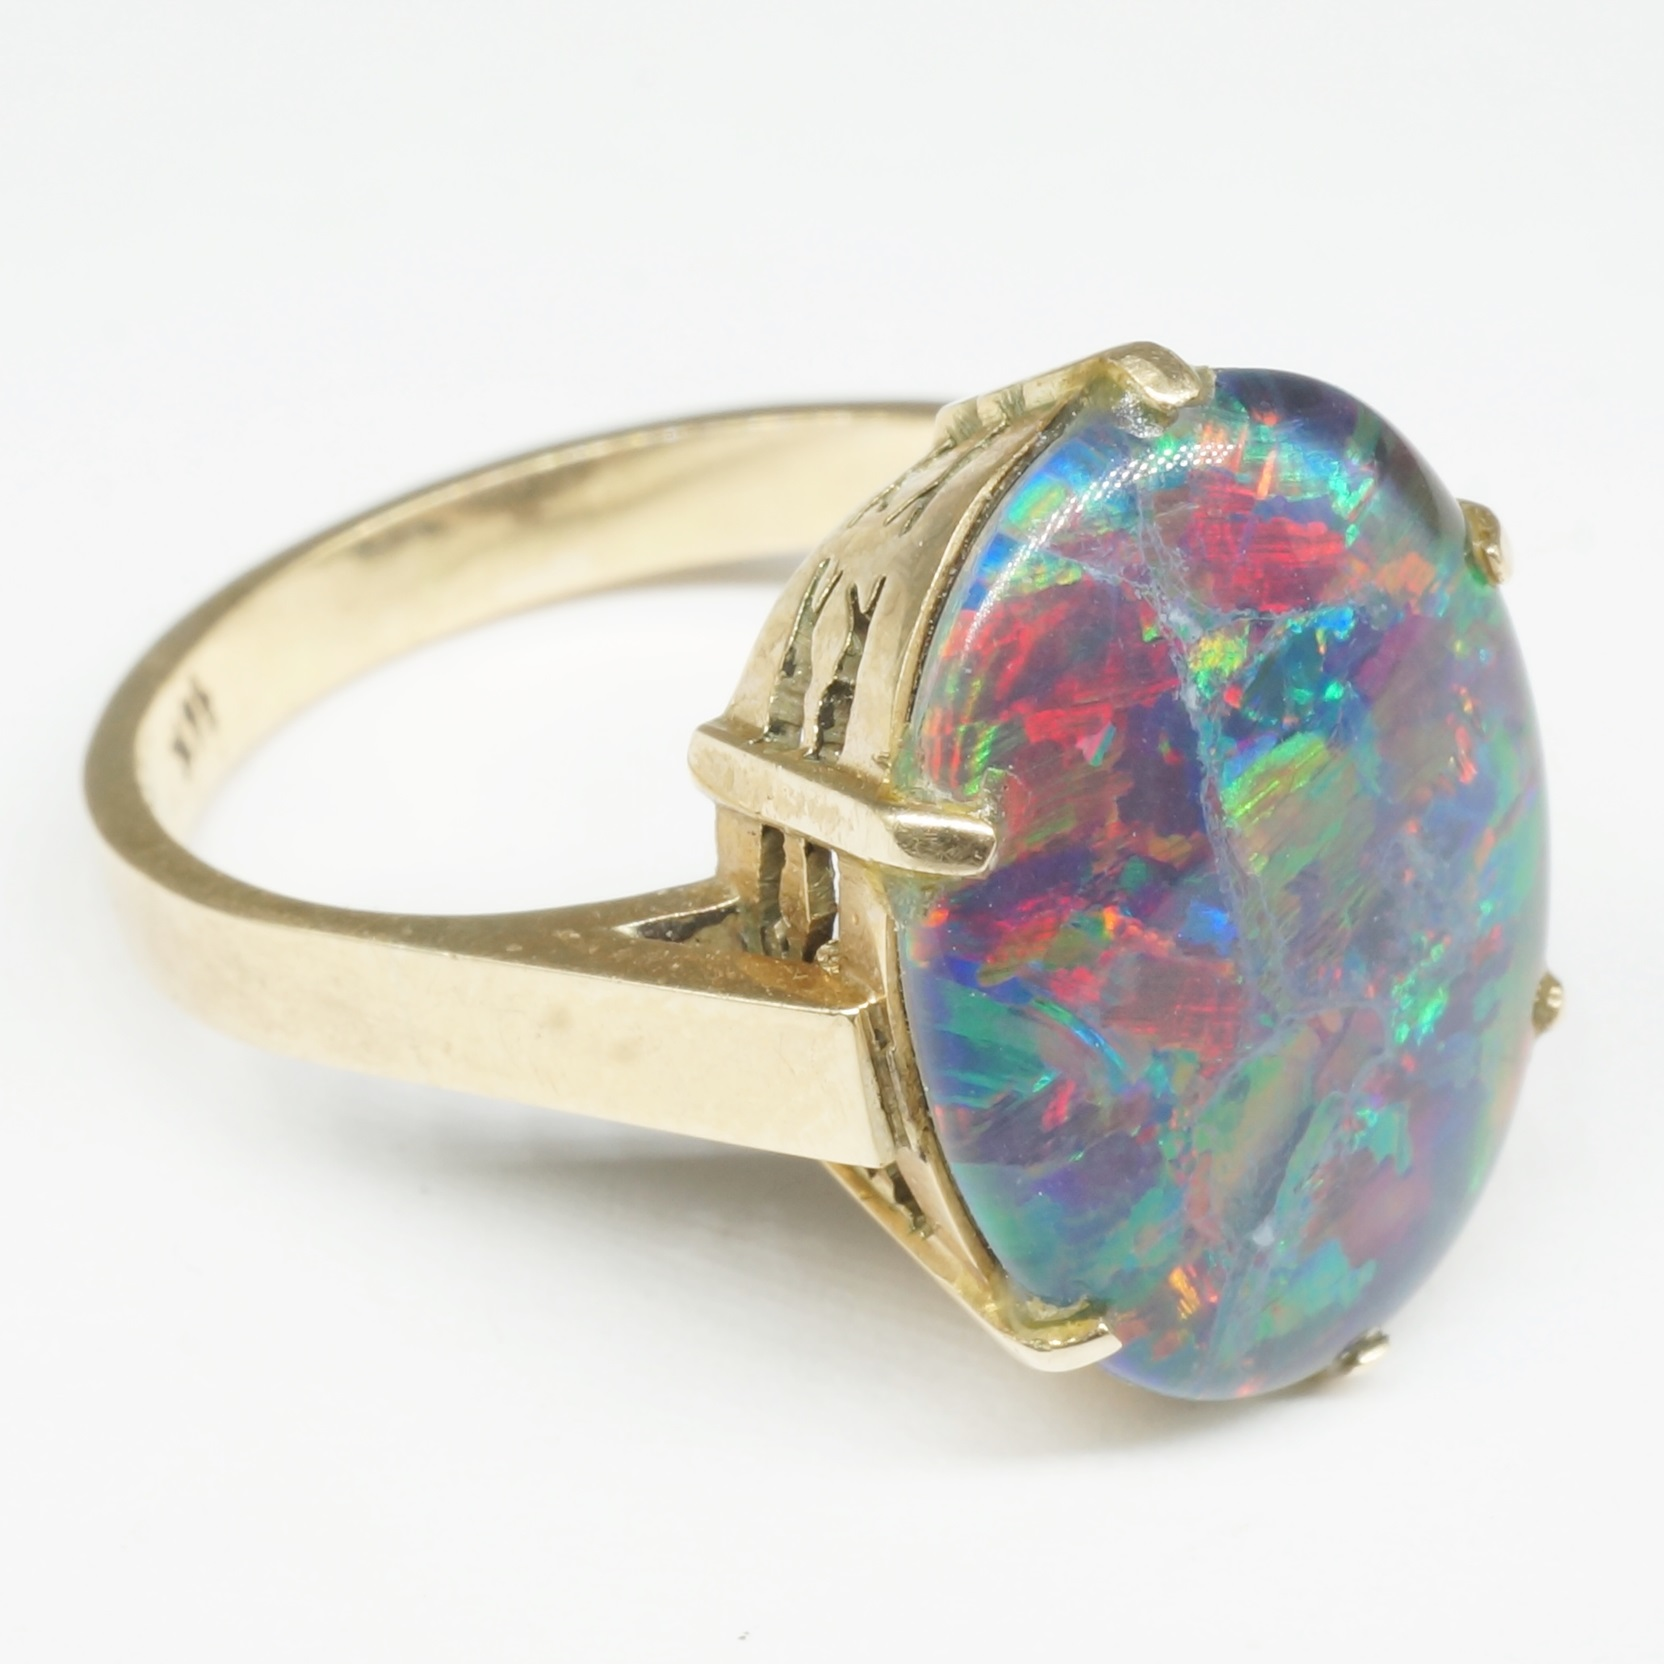 '14ct Yellow Gold Ring With Opal Triplet '